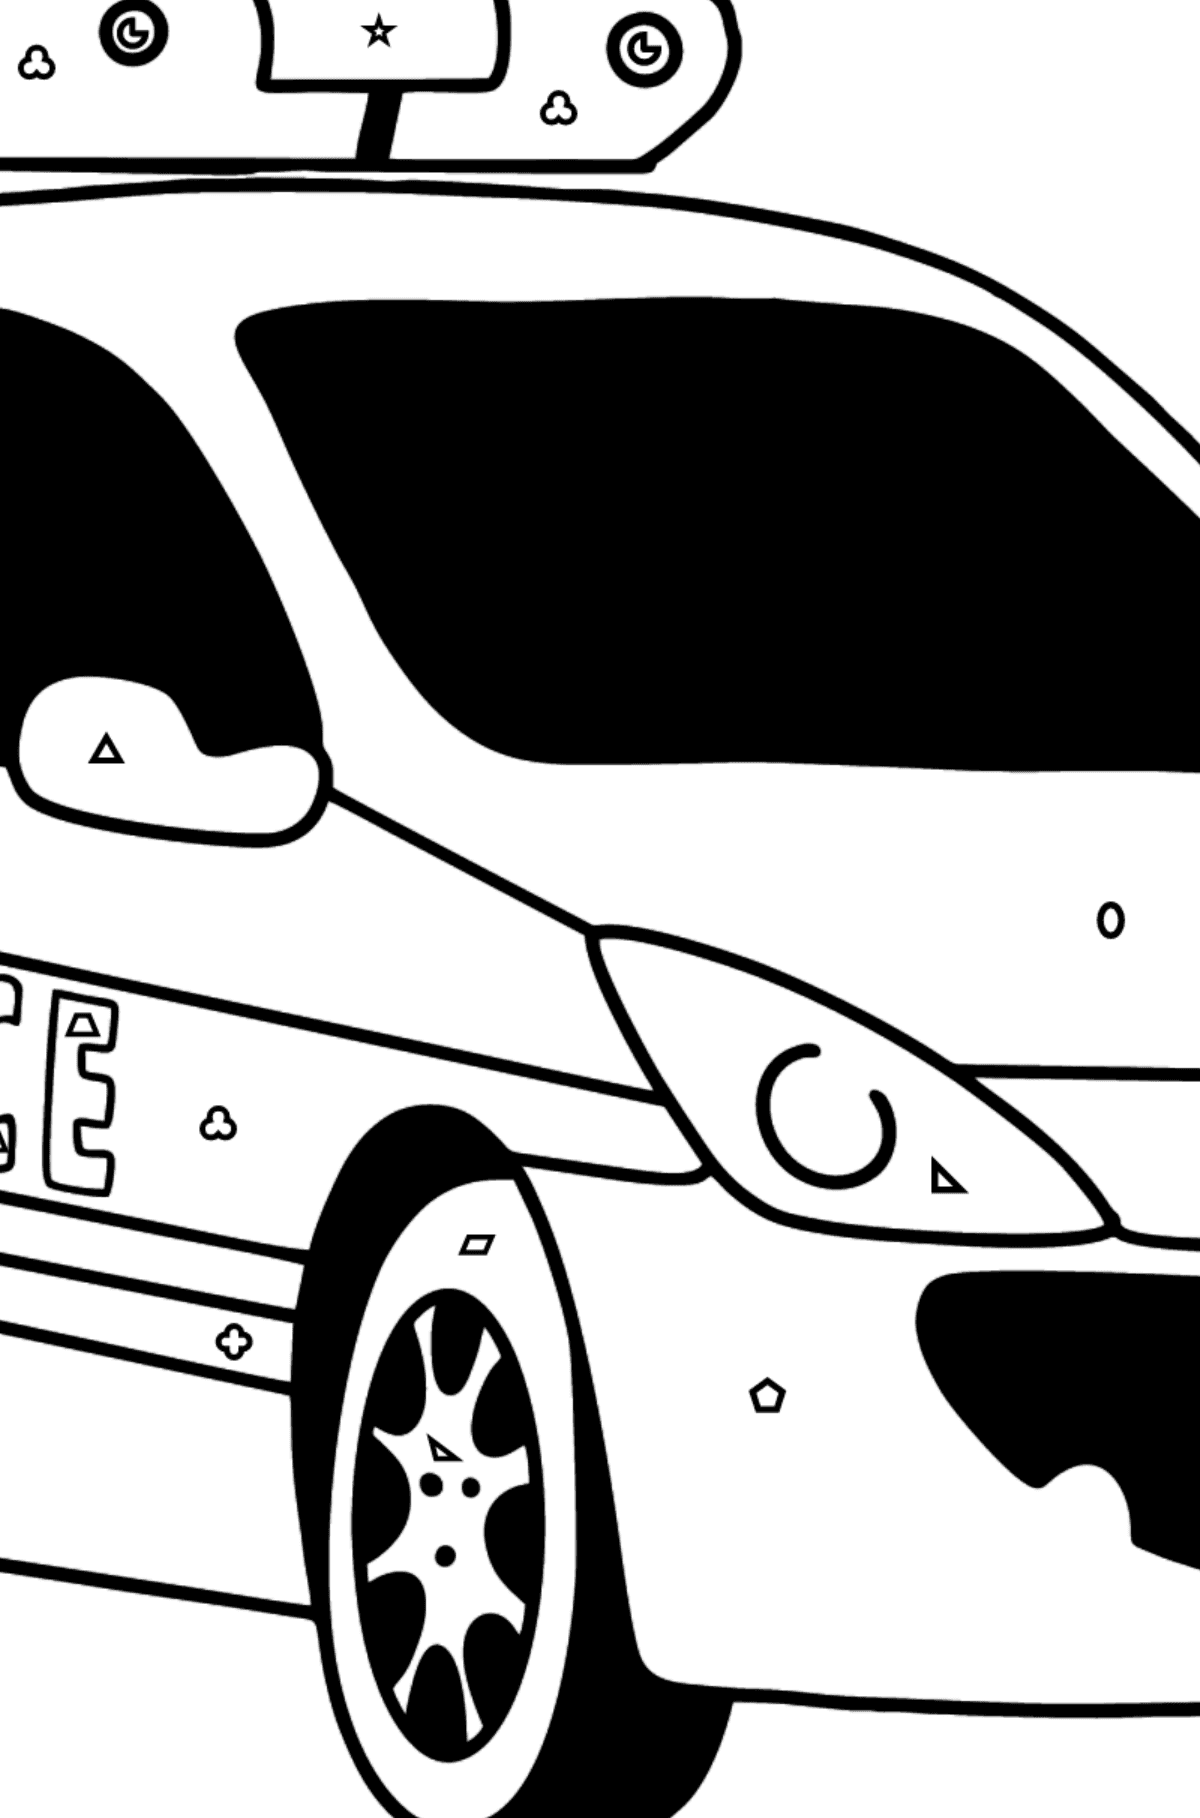 Police Car in France coloring page - Coloring by Geometric Shapes for Kids